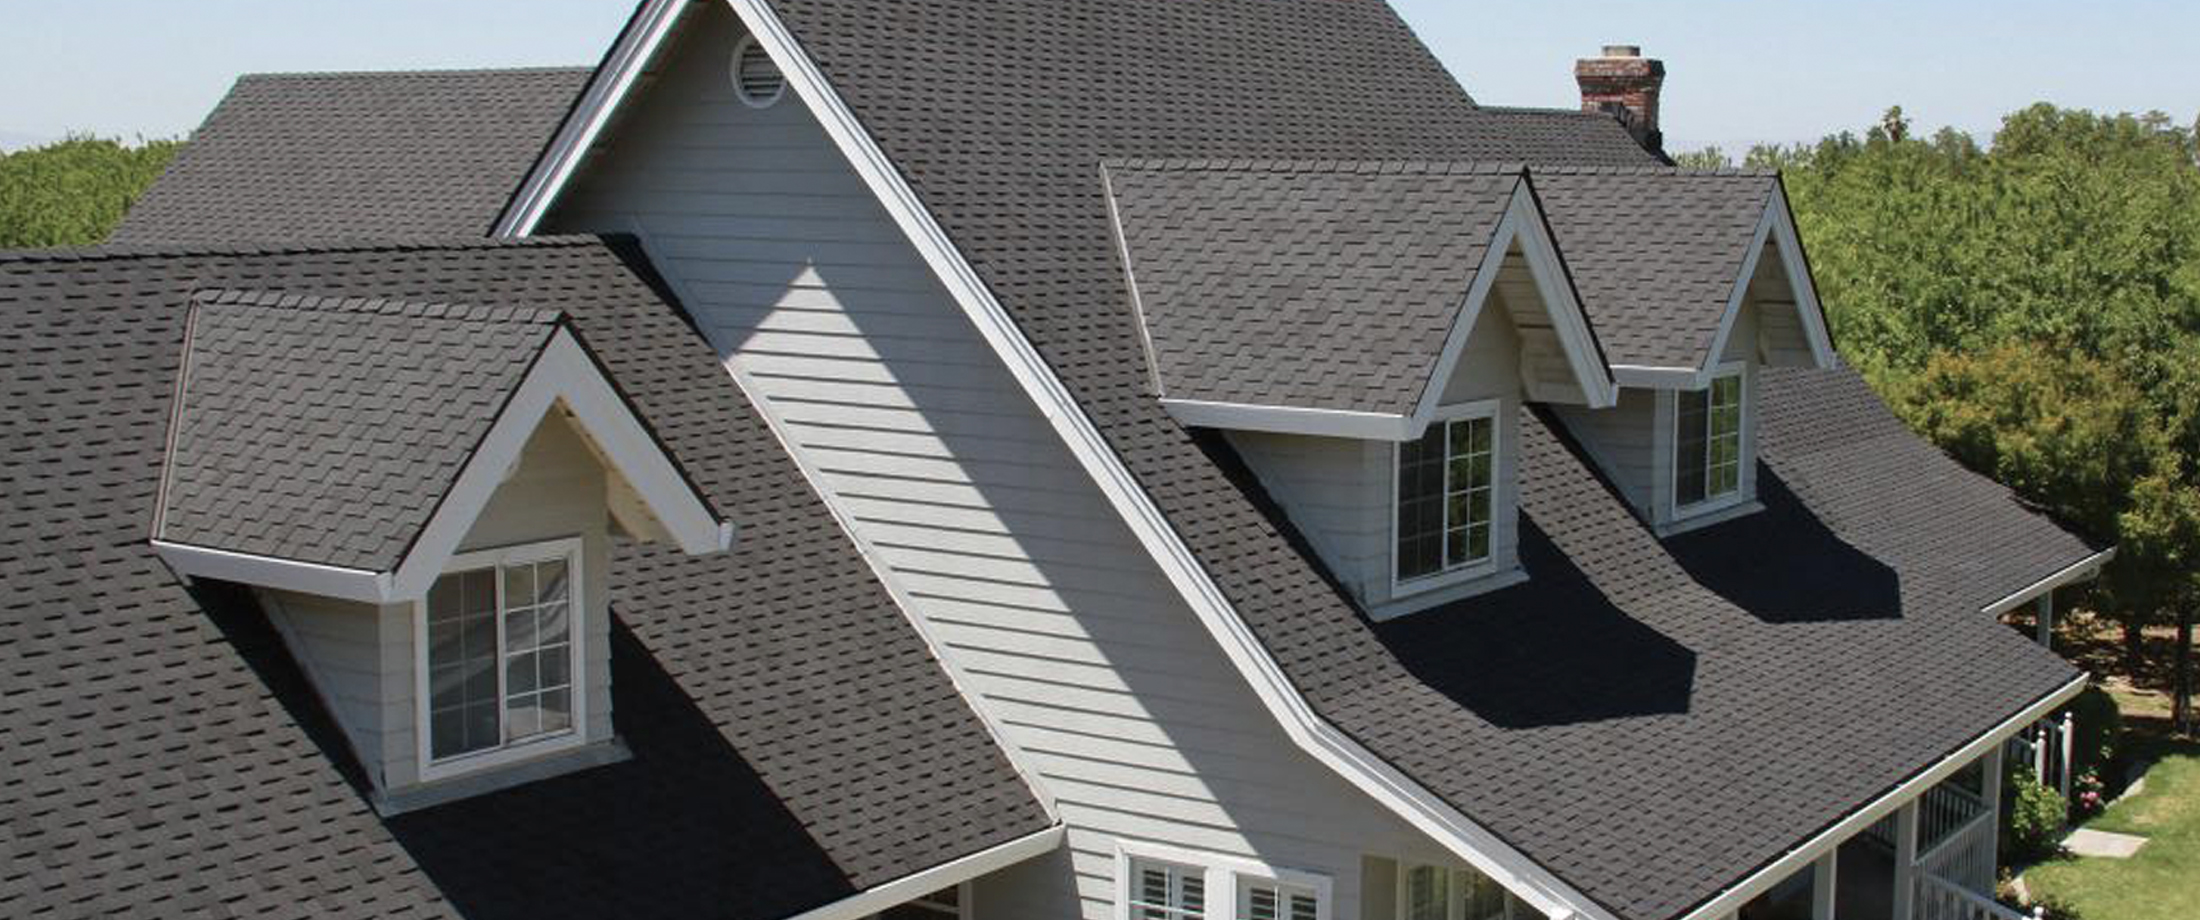 Reasons to Install Gutters in Your Home